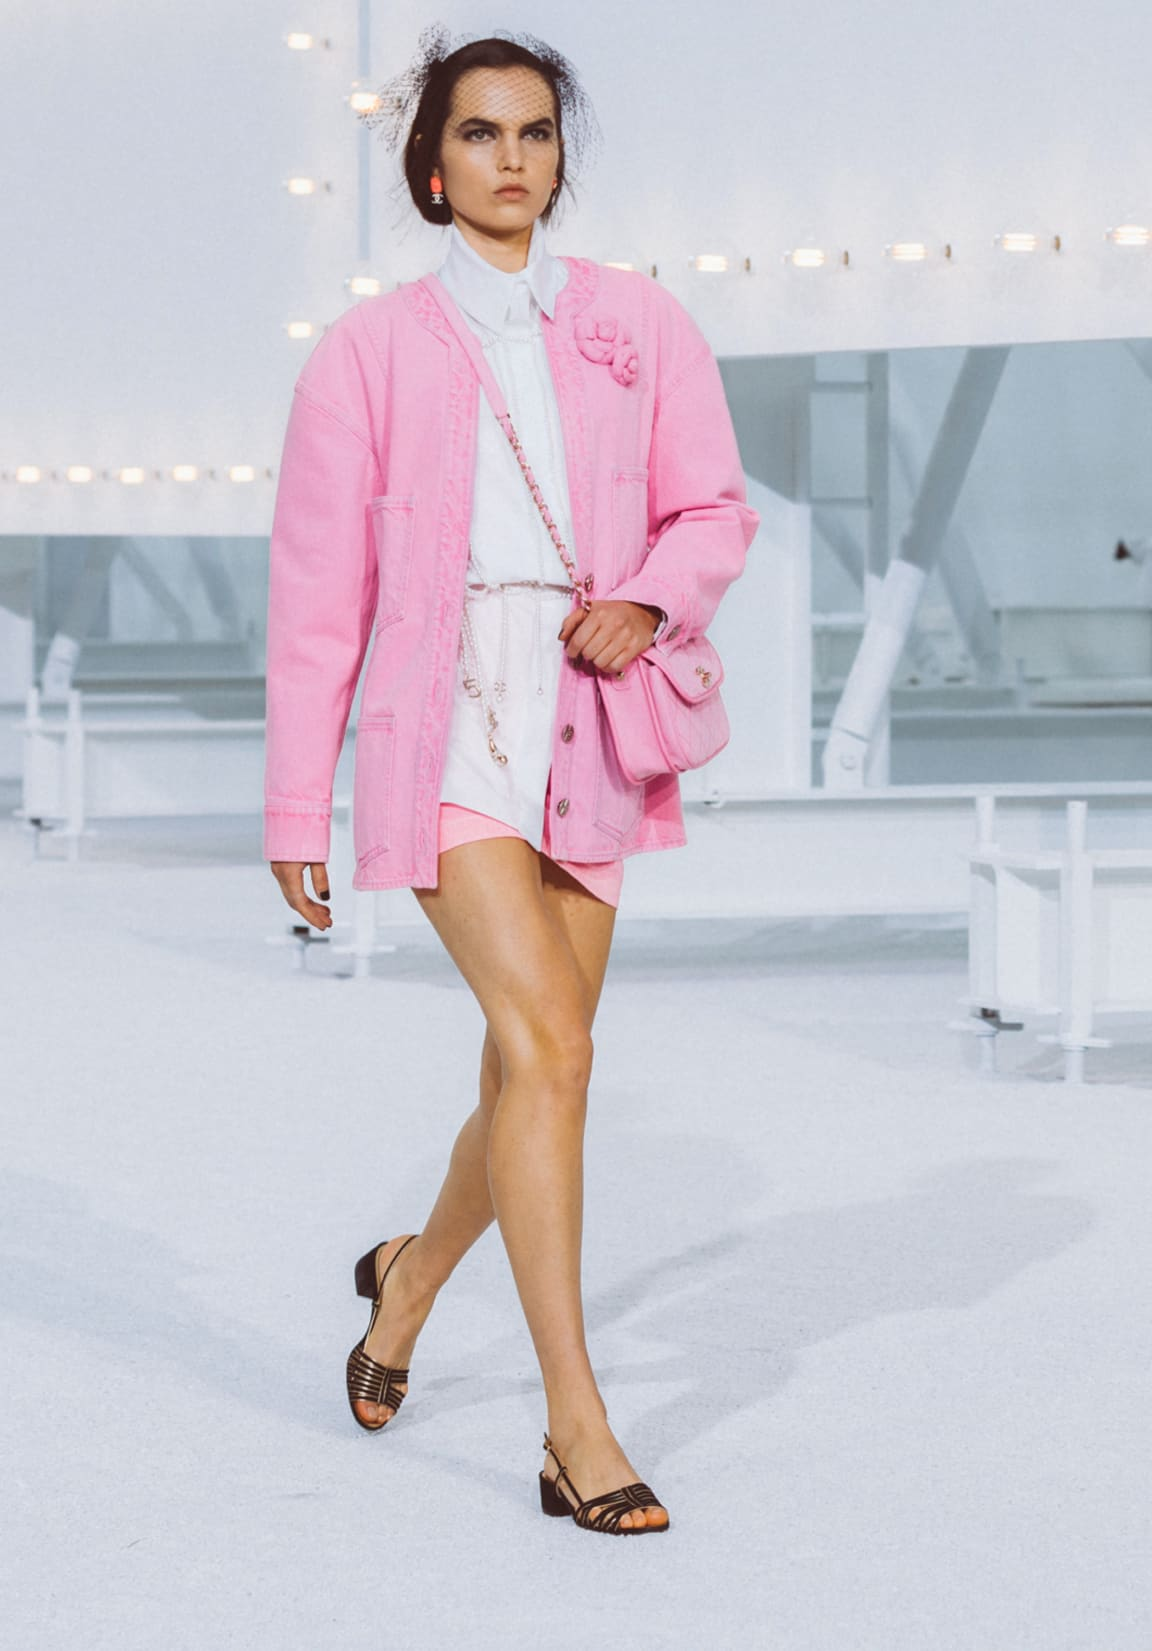 zoom - Image 1 - Look 25